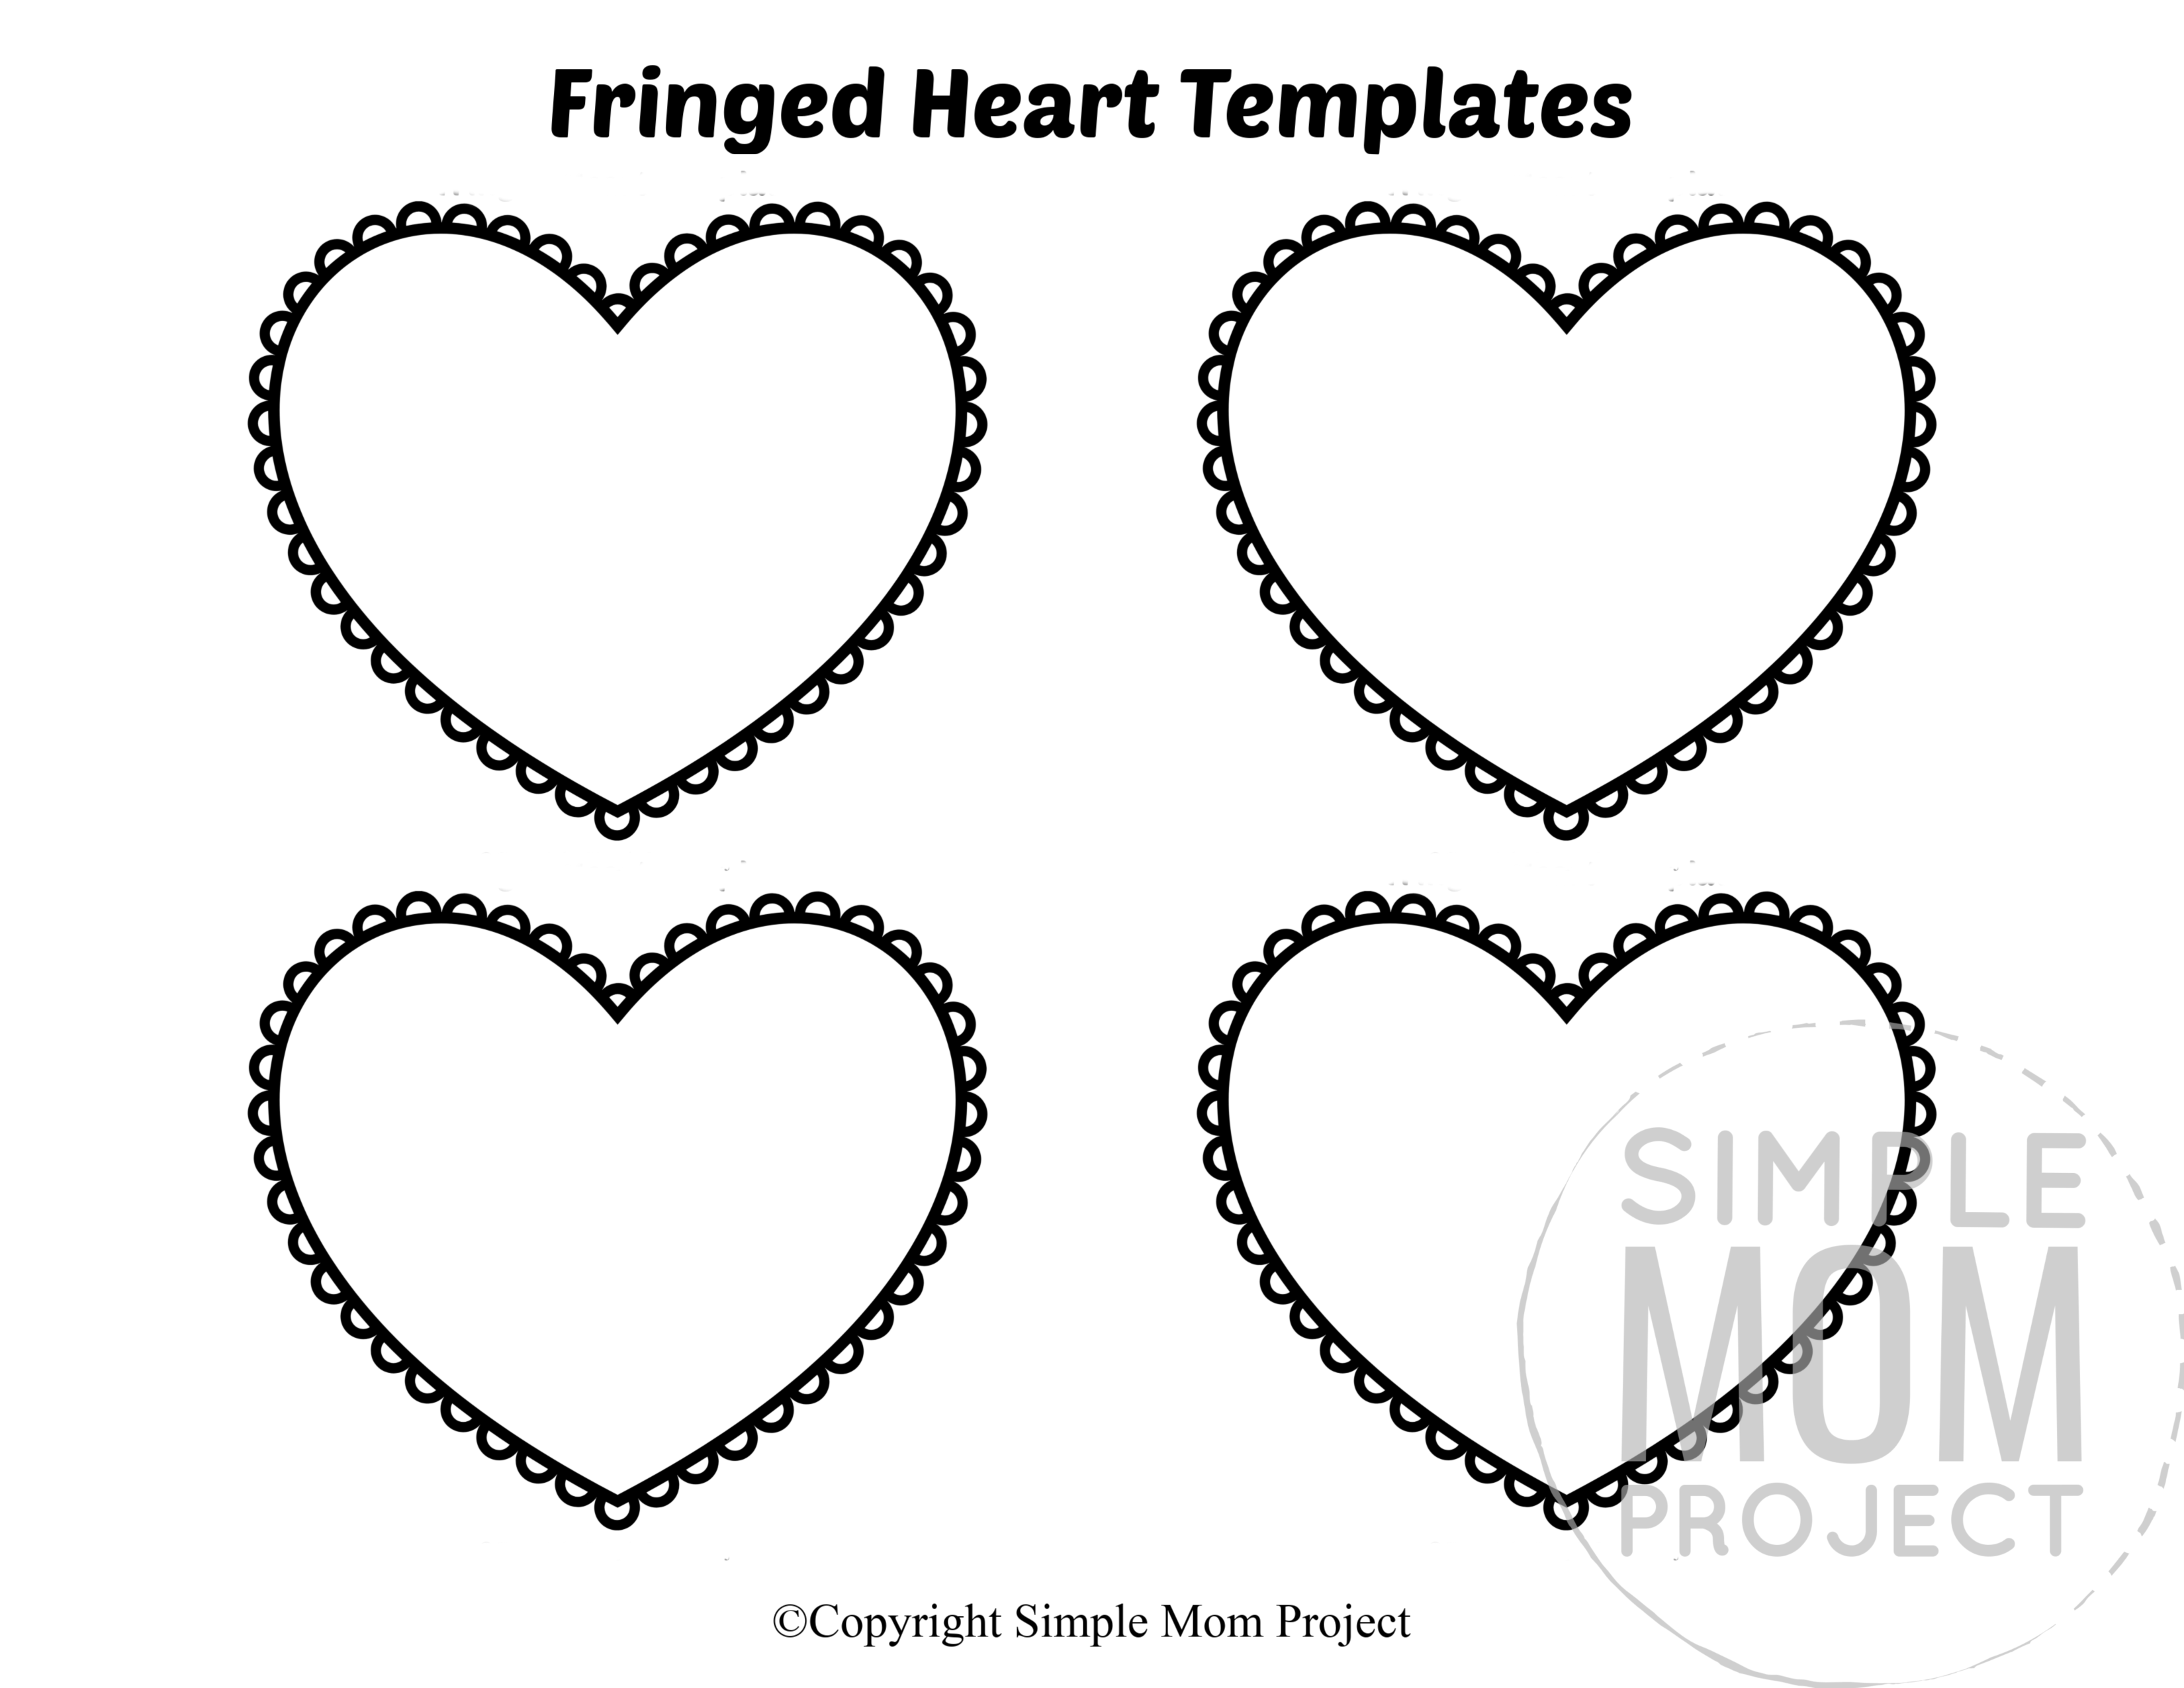 Fringed Small Heart Shaped Template Full Page Cutout outline stencil